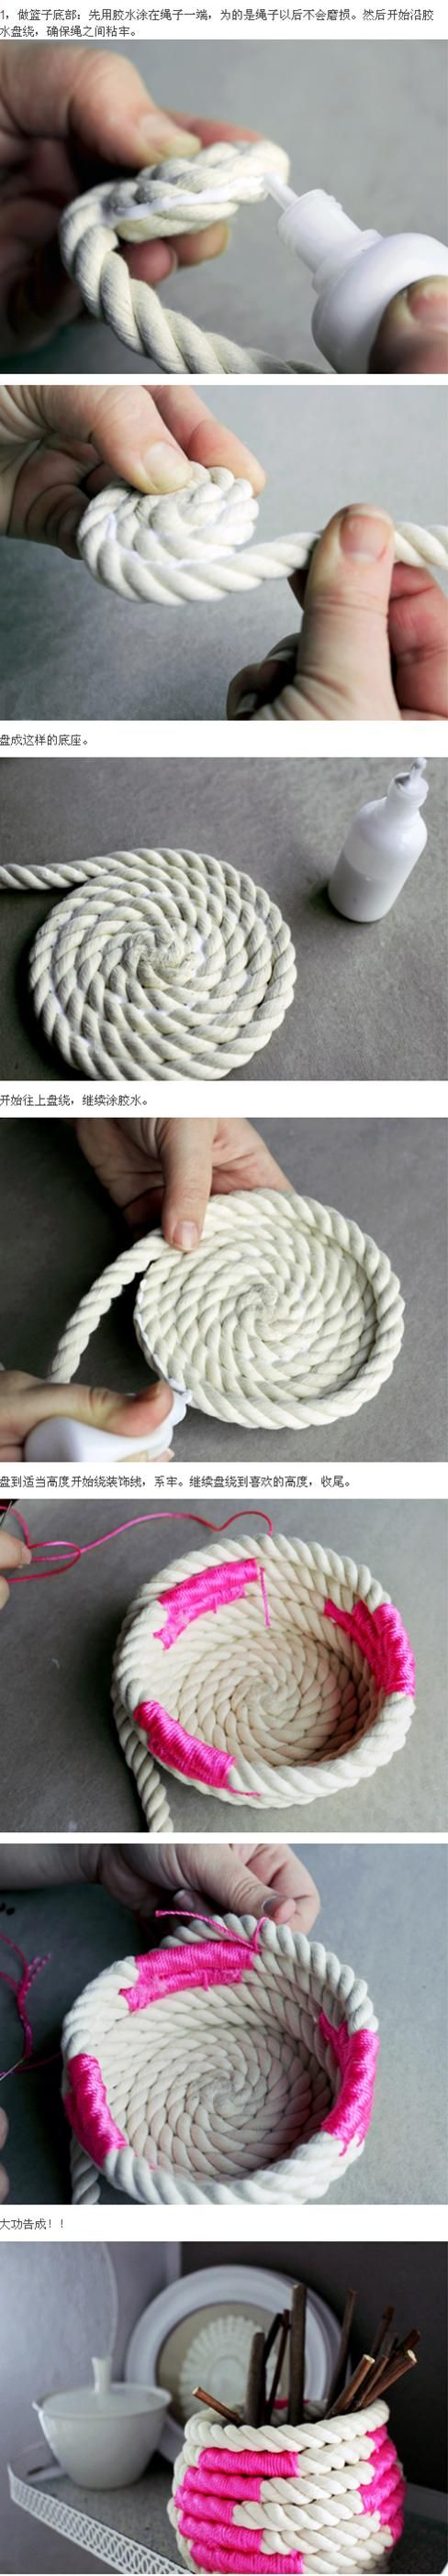 Rope Bowl. Love it!  Maybe this could work for a rope laundry basket, instead of glue use a tying technique to hold rows together.  ?